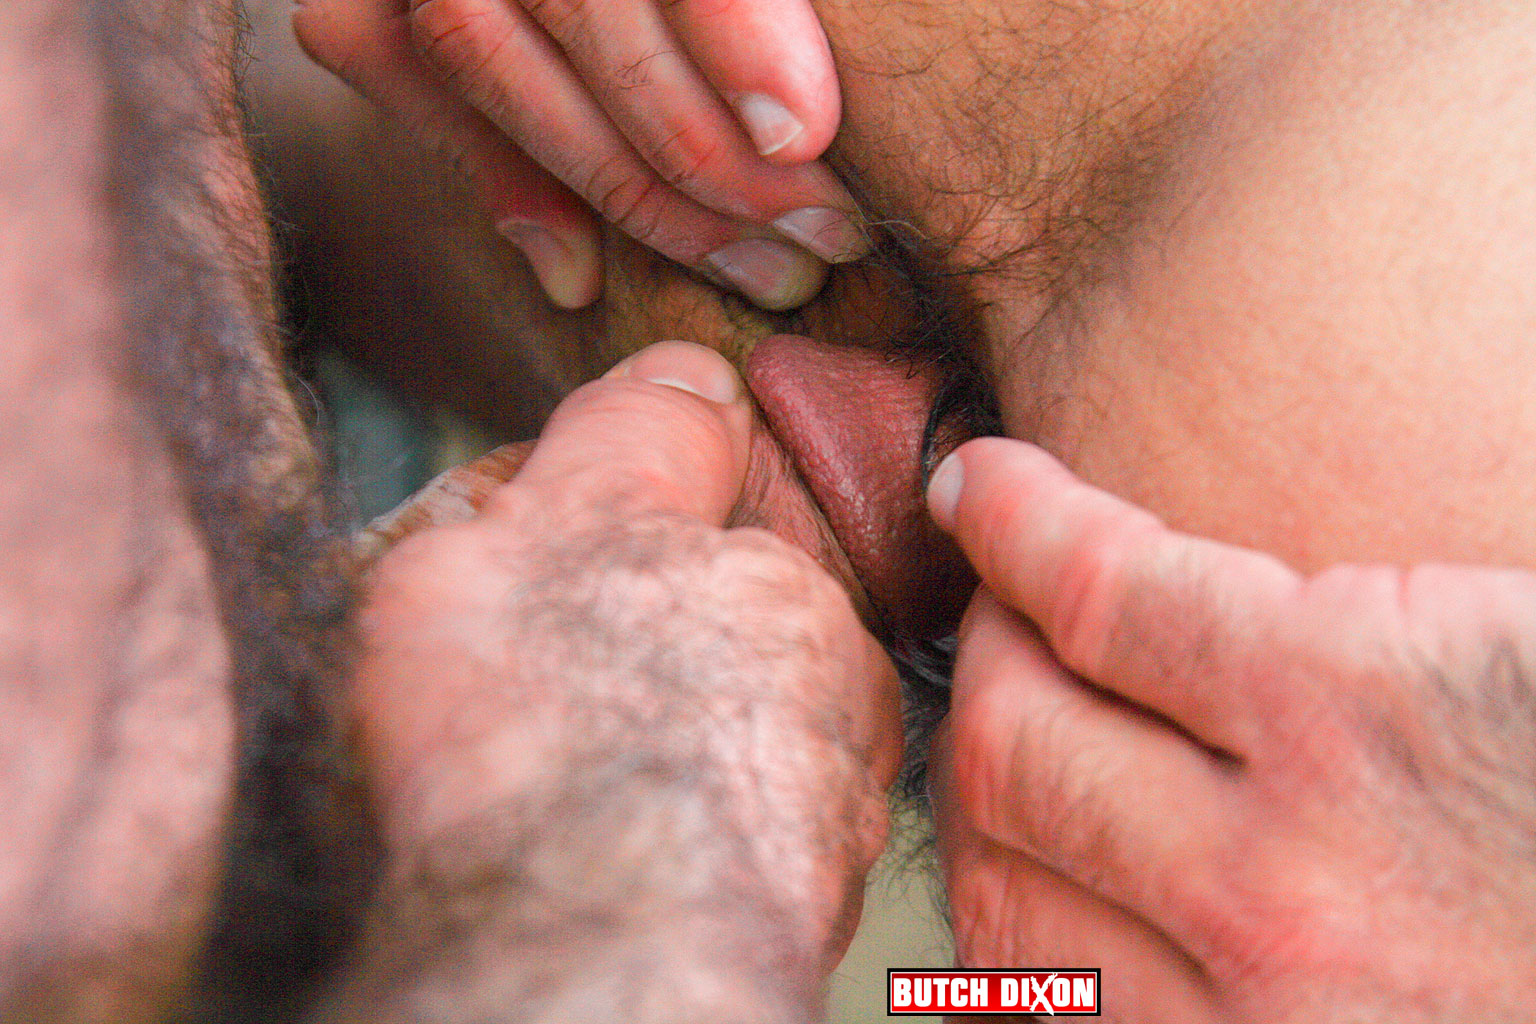 Butch-Dixon-Jeff-Grove-and-Josh-Ford-Hairy-Daddies-Fucking-with-this-Hairy-Daddy-Cock-11 Jeff Grove and Josh Ford:  Amateur Hairy Daddies Barebacking